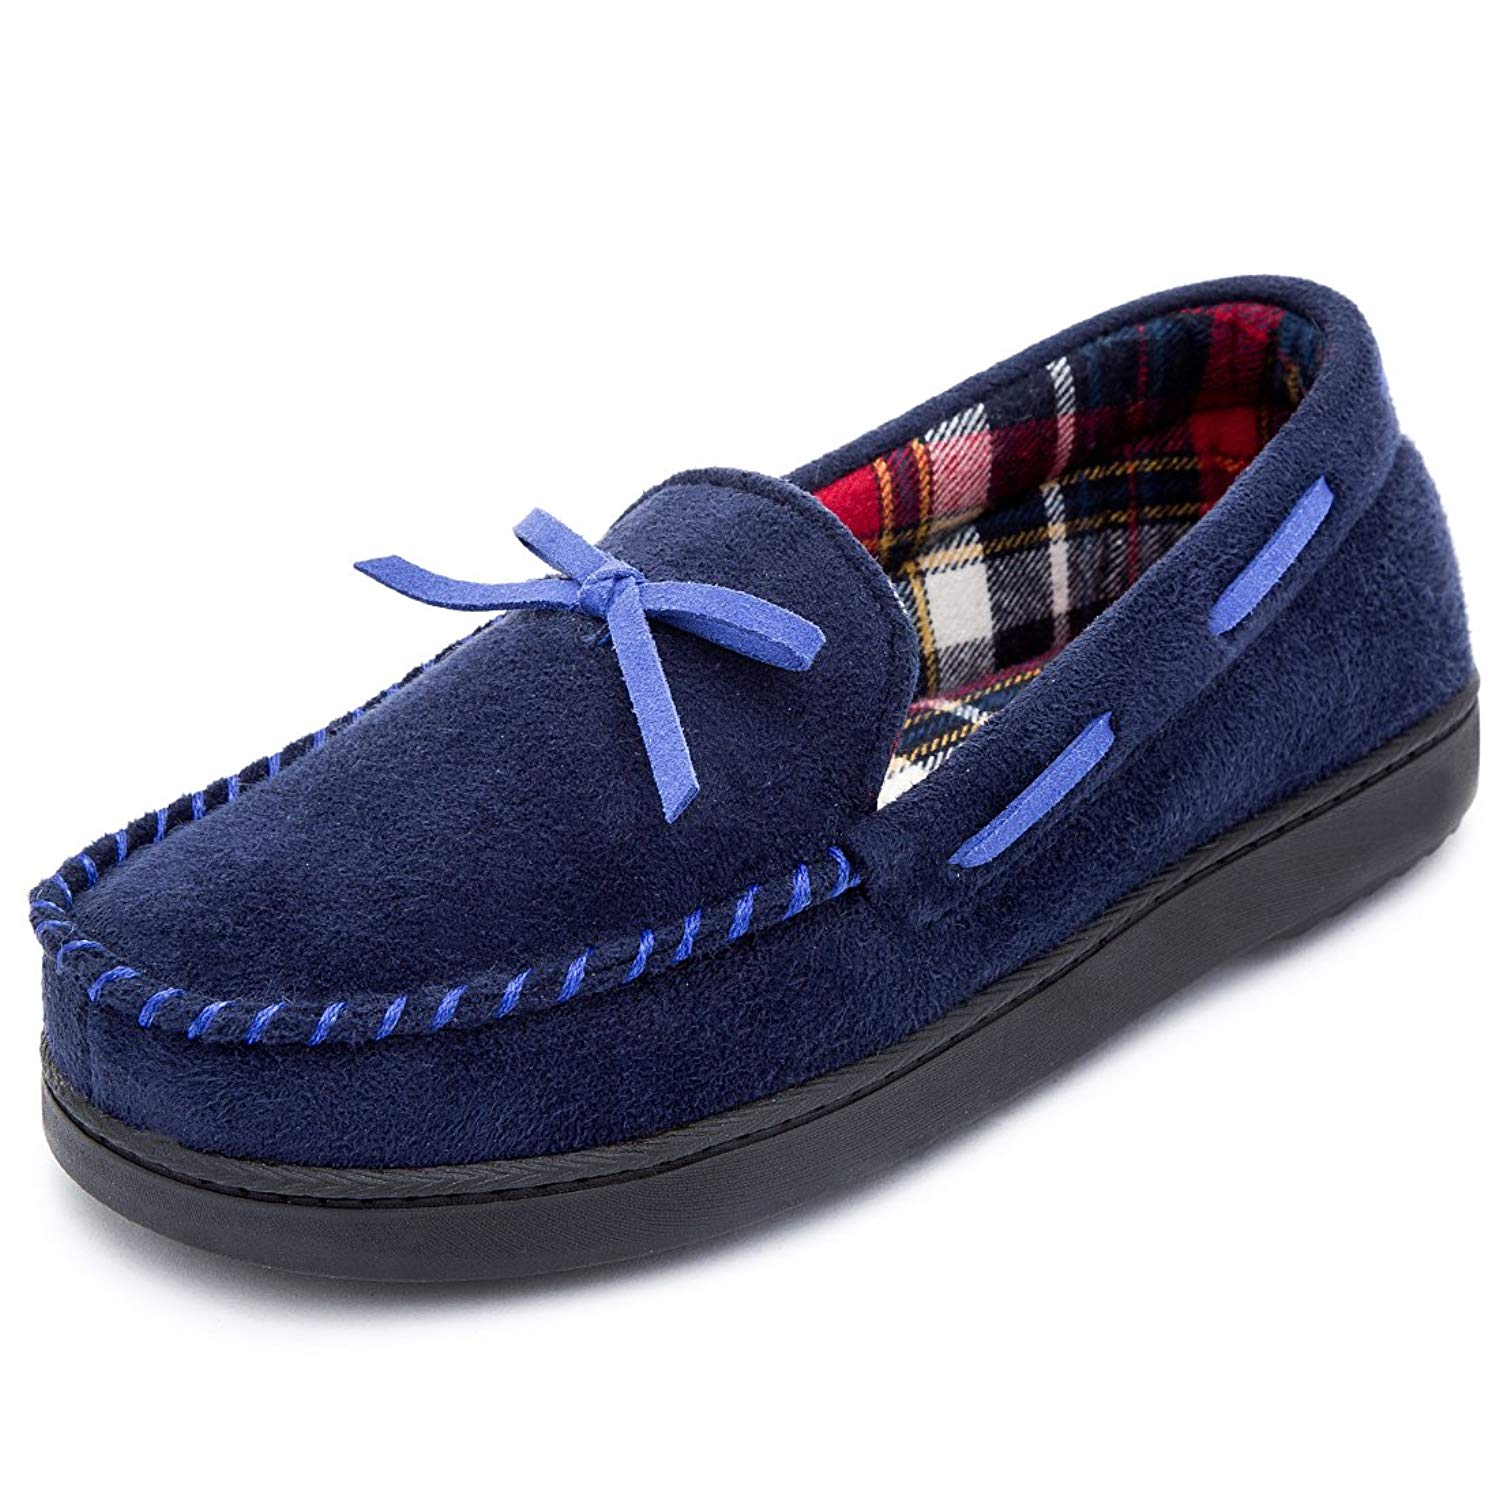 Contrast Color Flannel Lined Moccasin